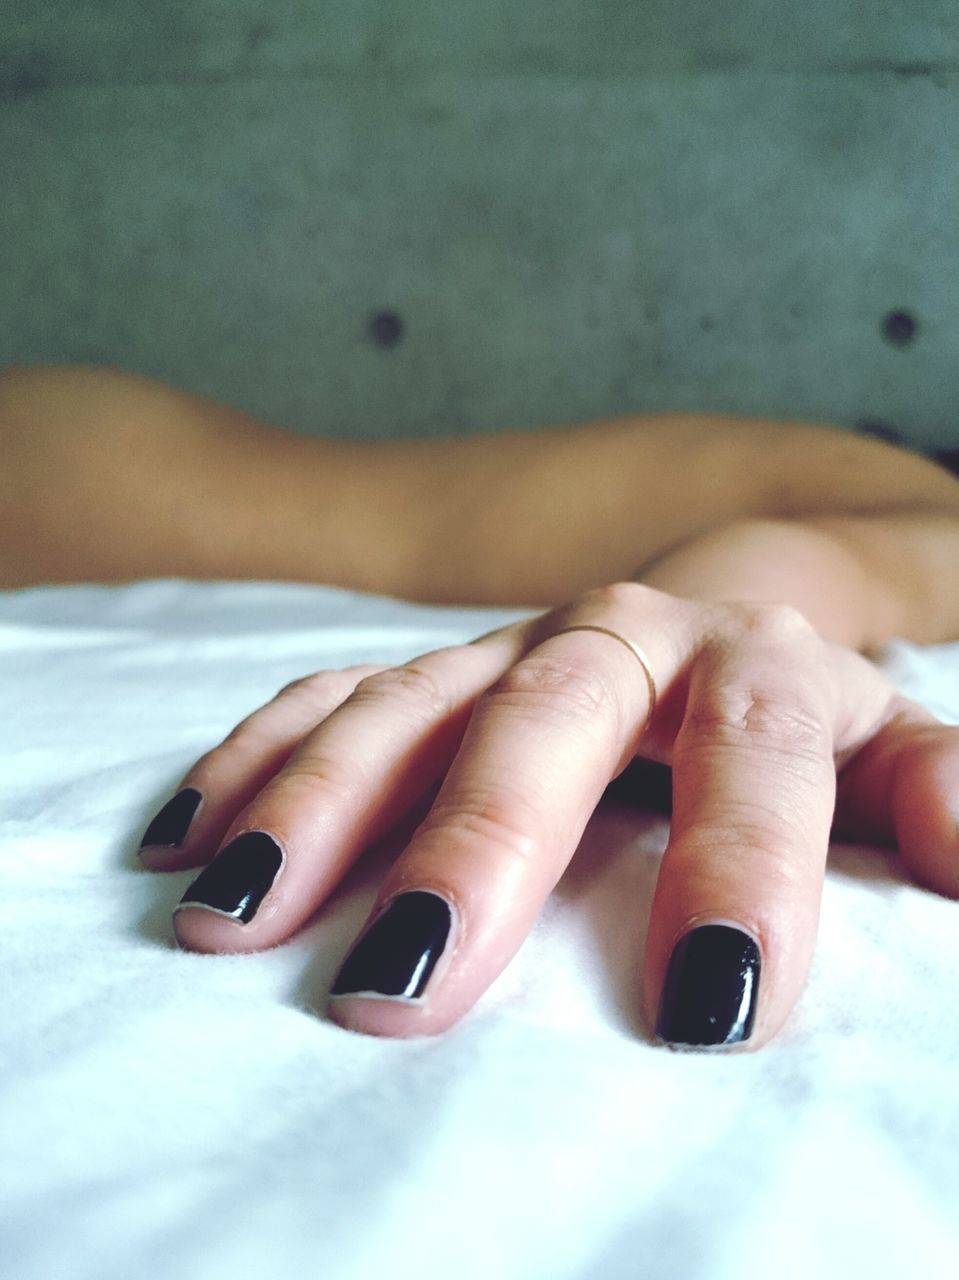 Cropped Hand Woman With Black Nail Polish On Bed At Home